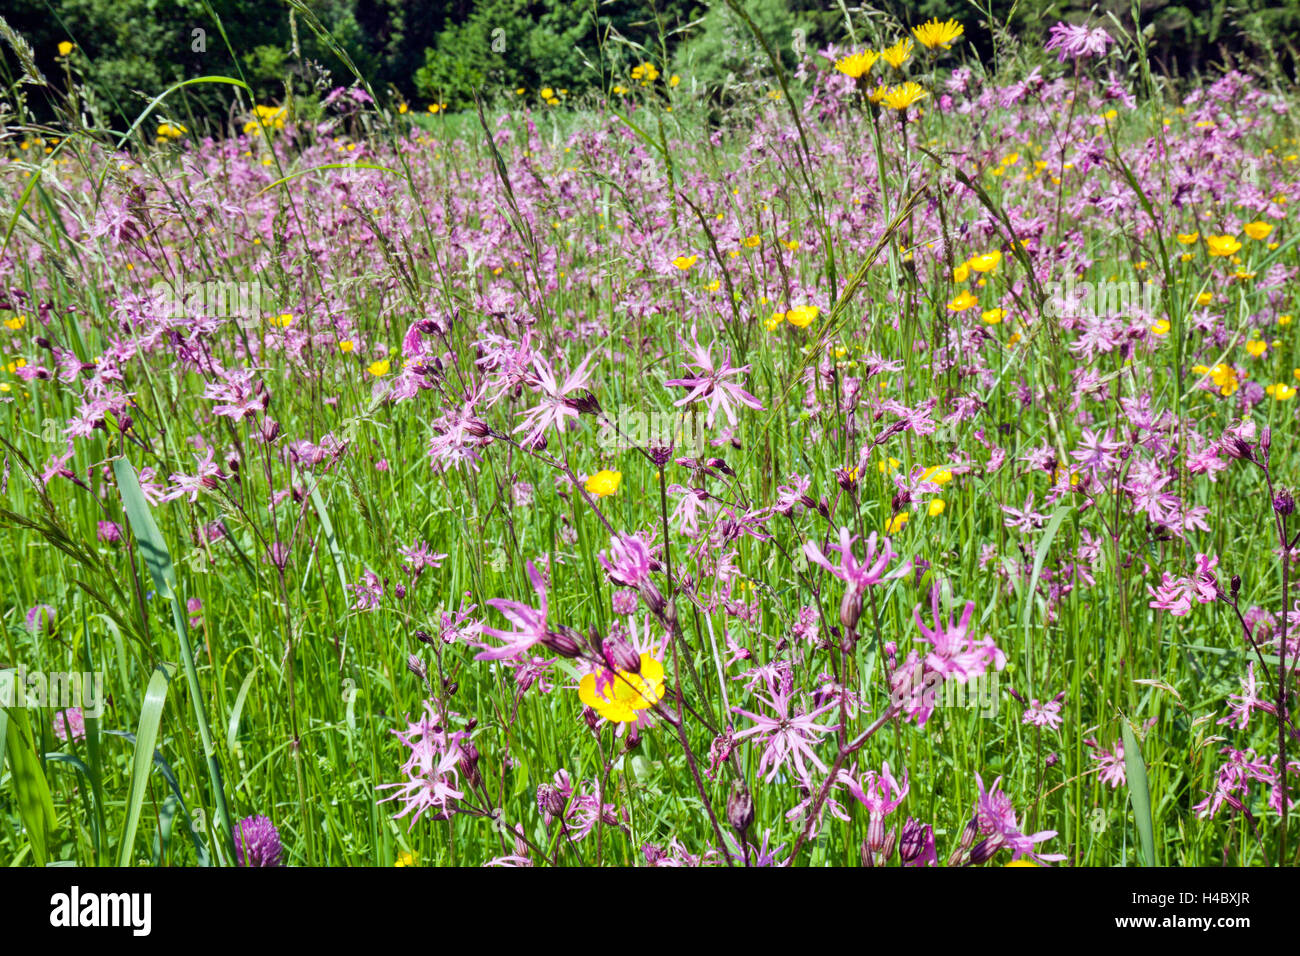 Flower meadow with Ragged-Robins - Stock Image